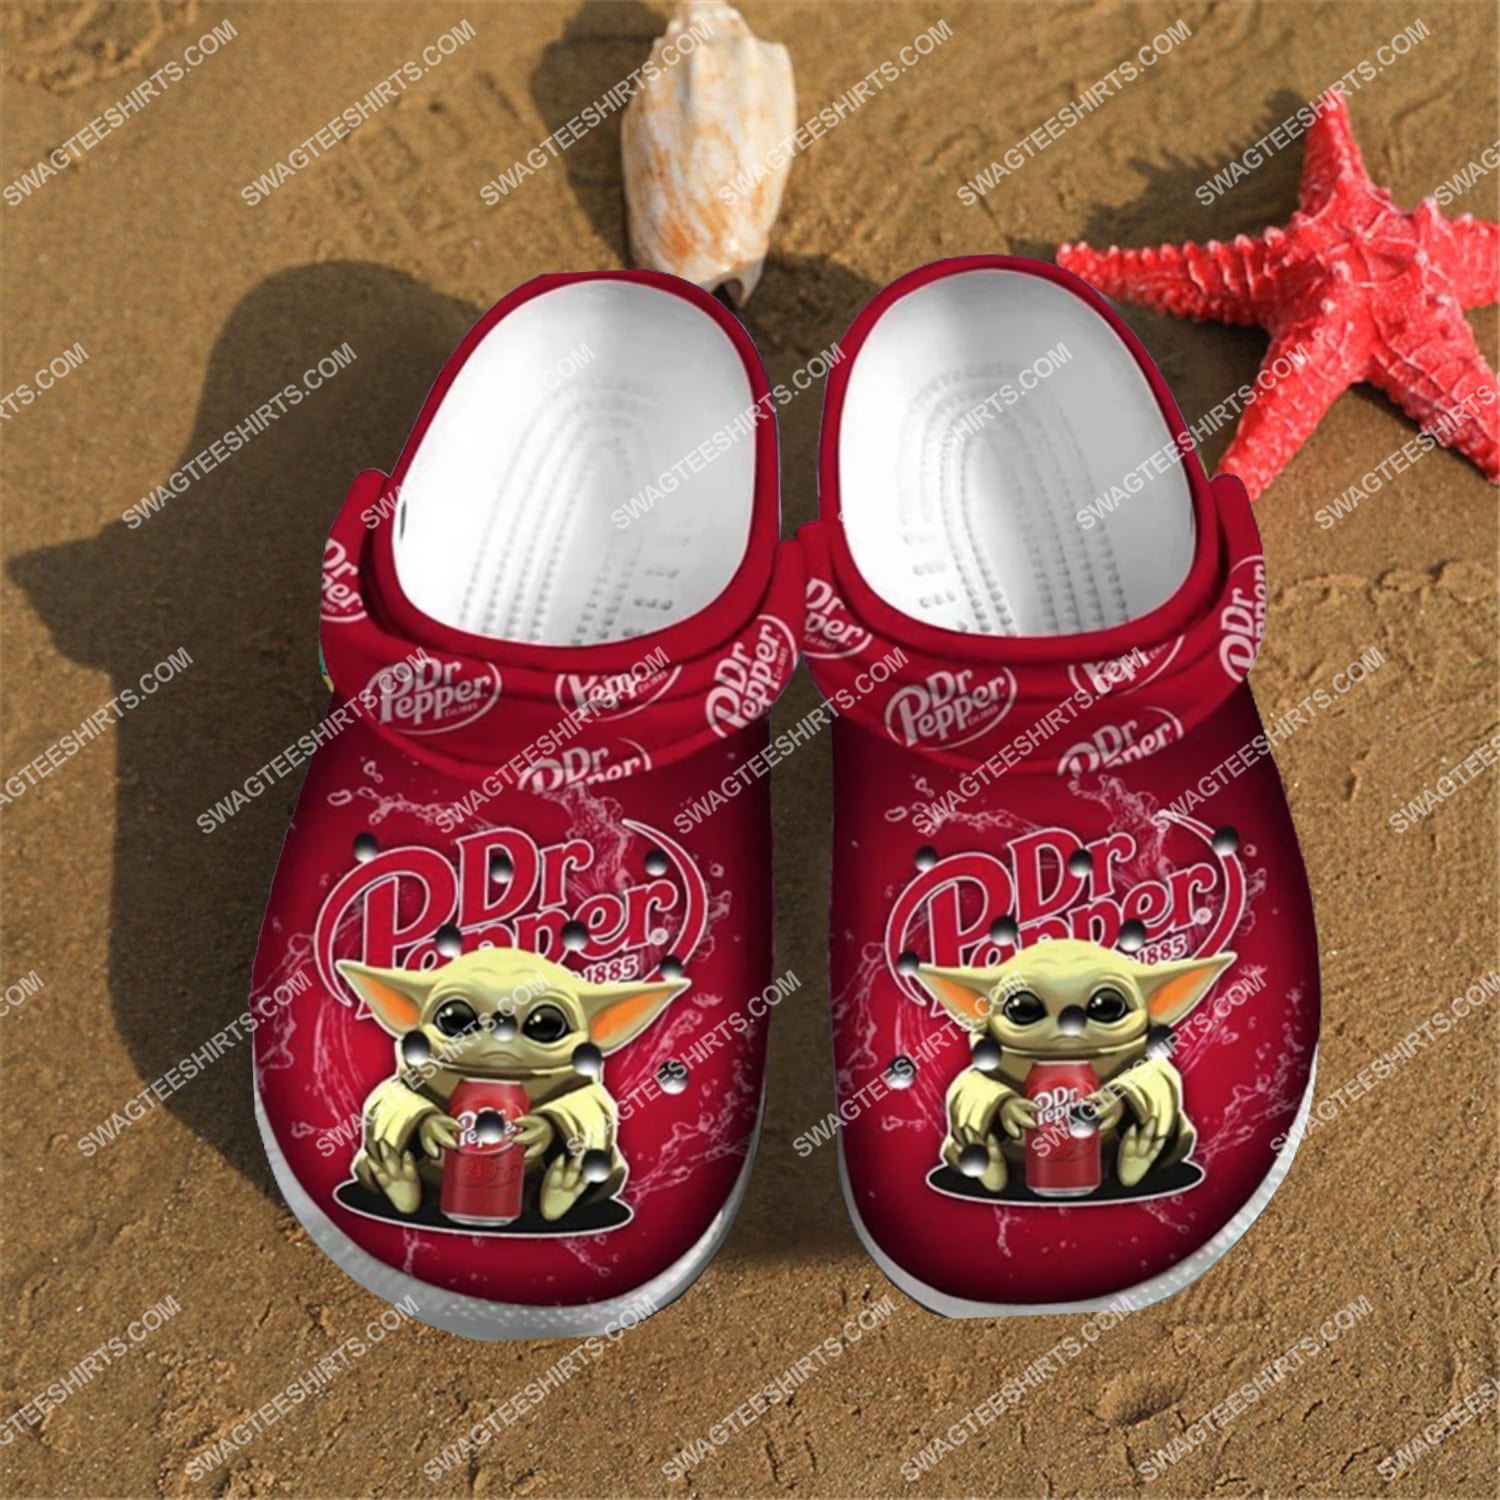 dr pepper and baby yoda all over printed crocs 3(1)